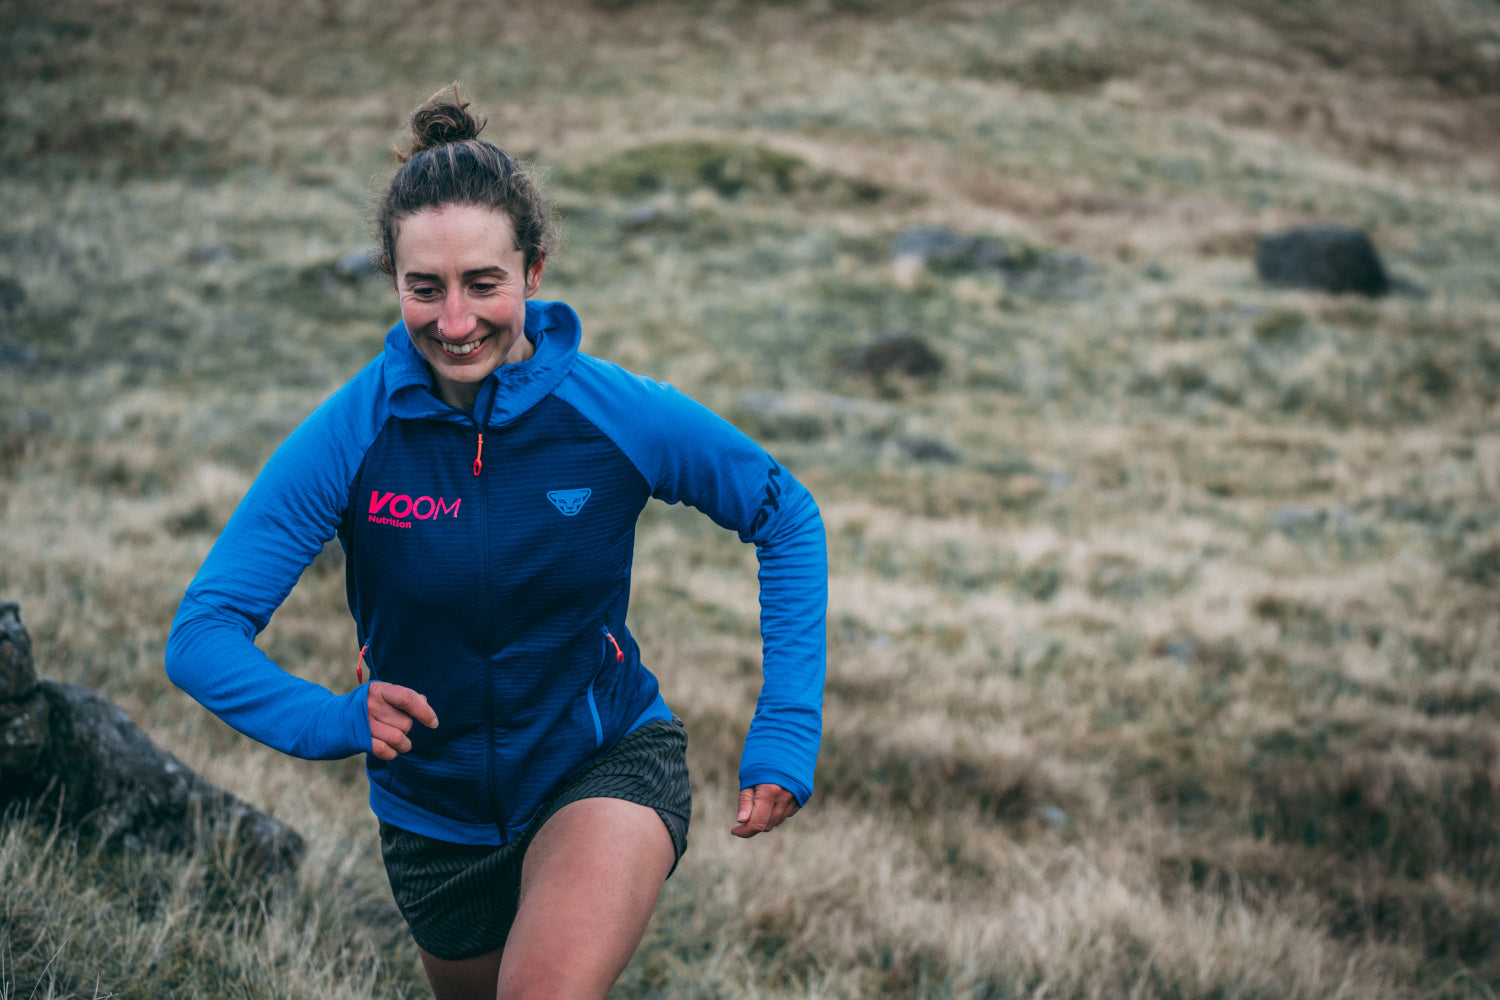 A female runner with a big smile on her face strides out up a grassy hill